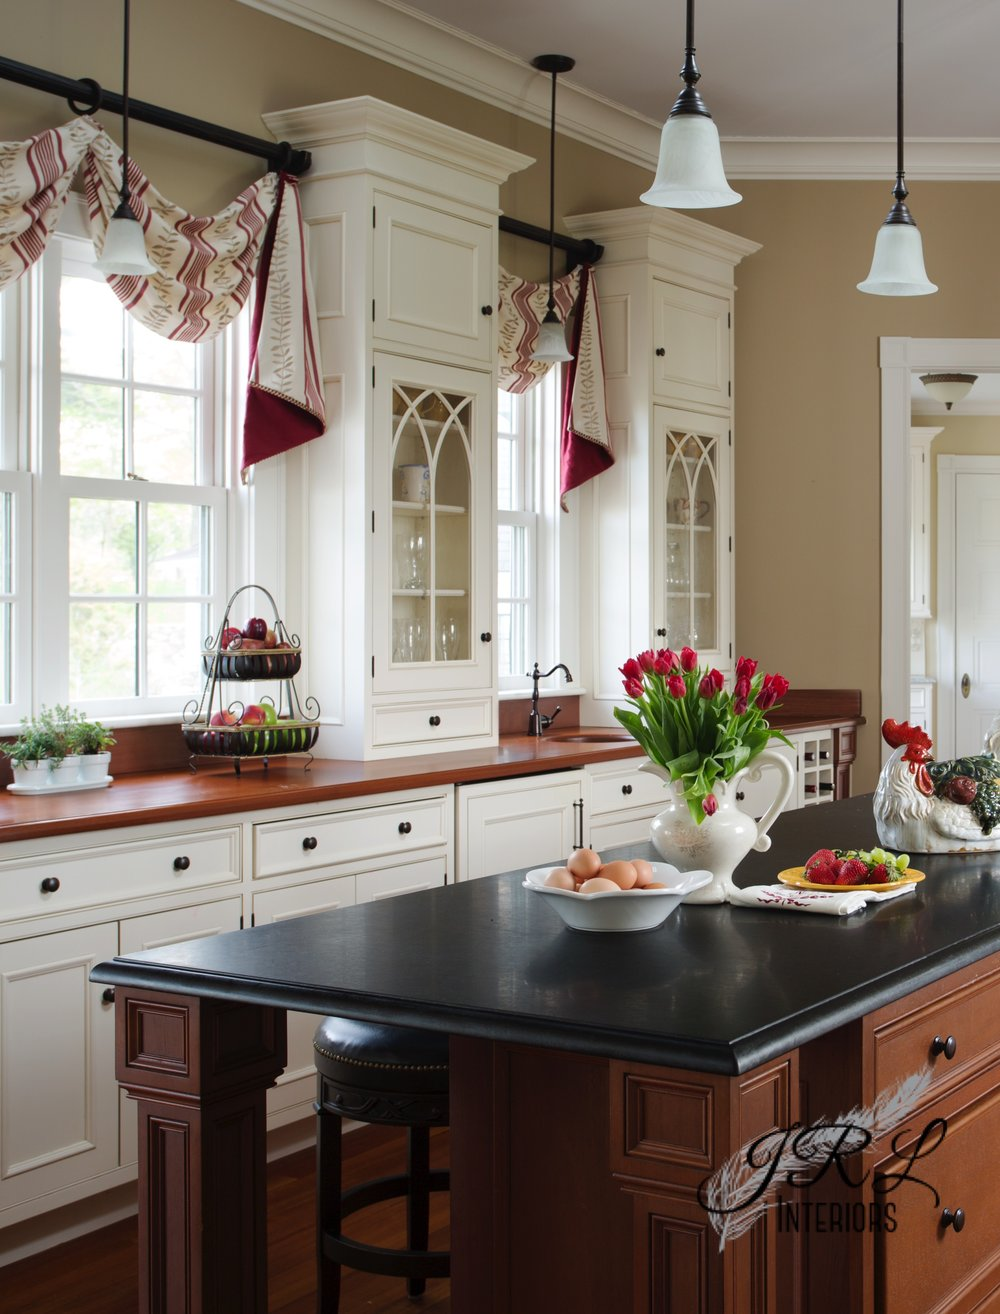 Leather swivel stools with nailhead trim tuck neatly under the island in this elegant farmhouse kitchen when not in use